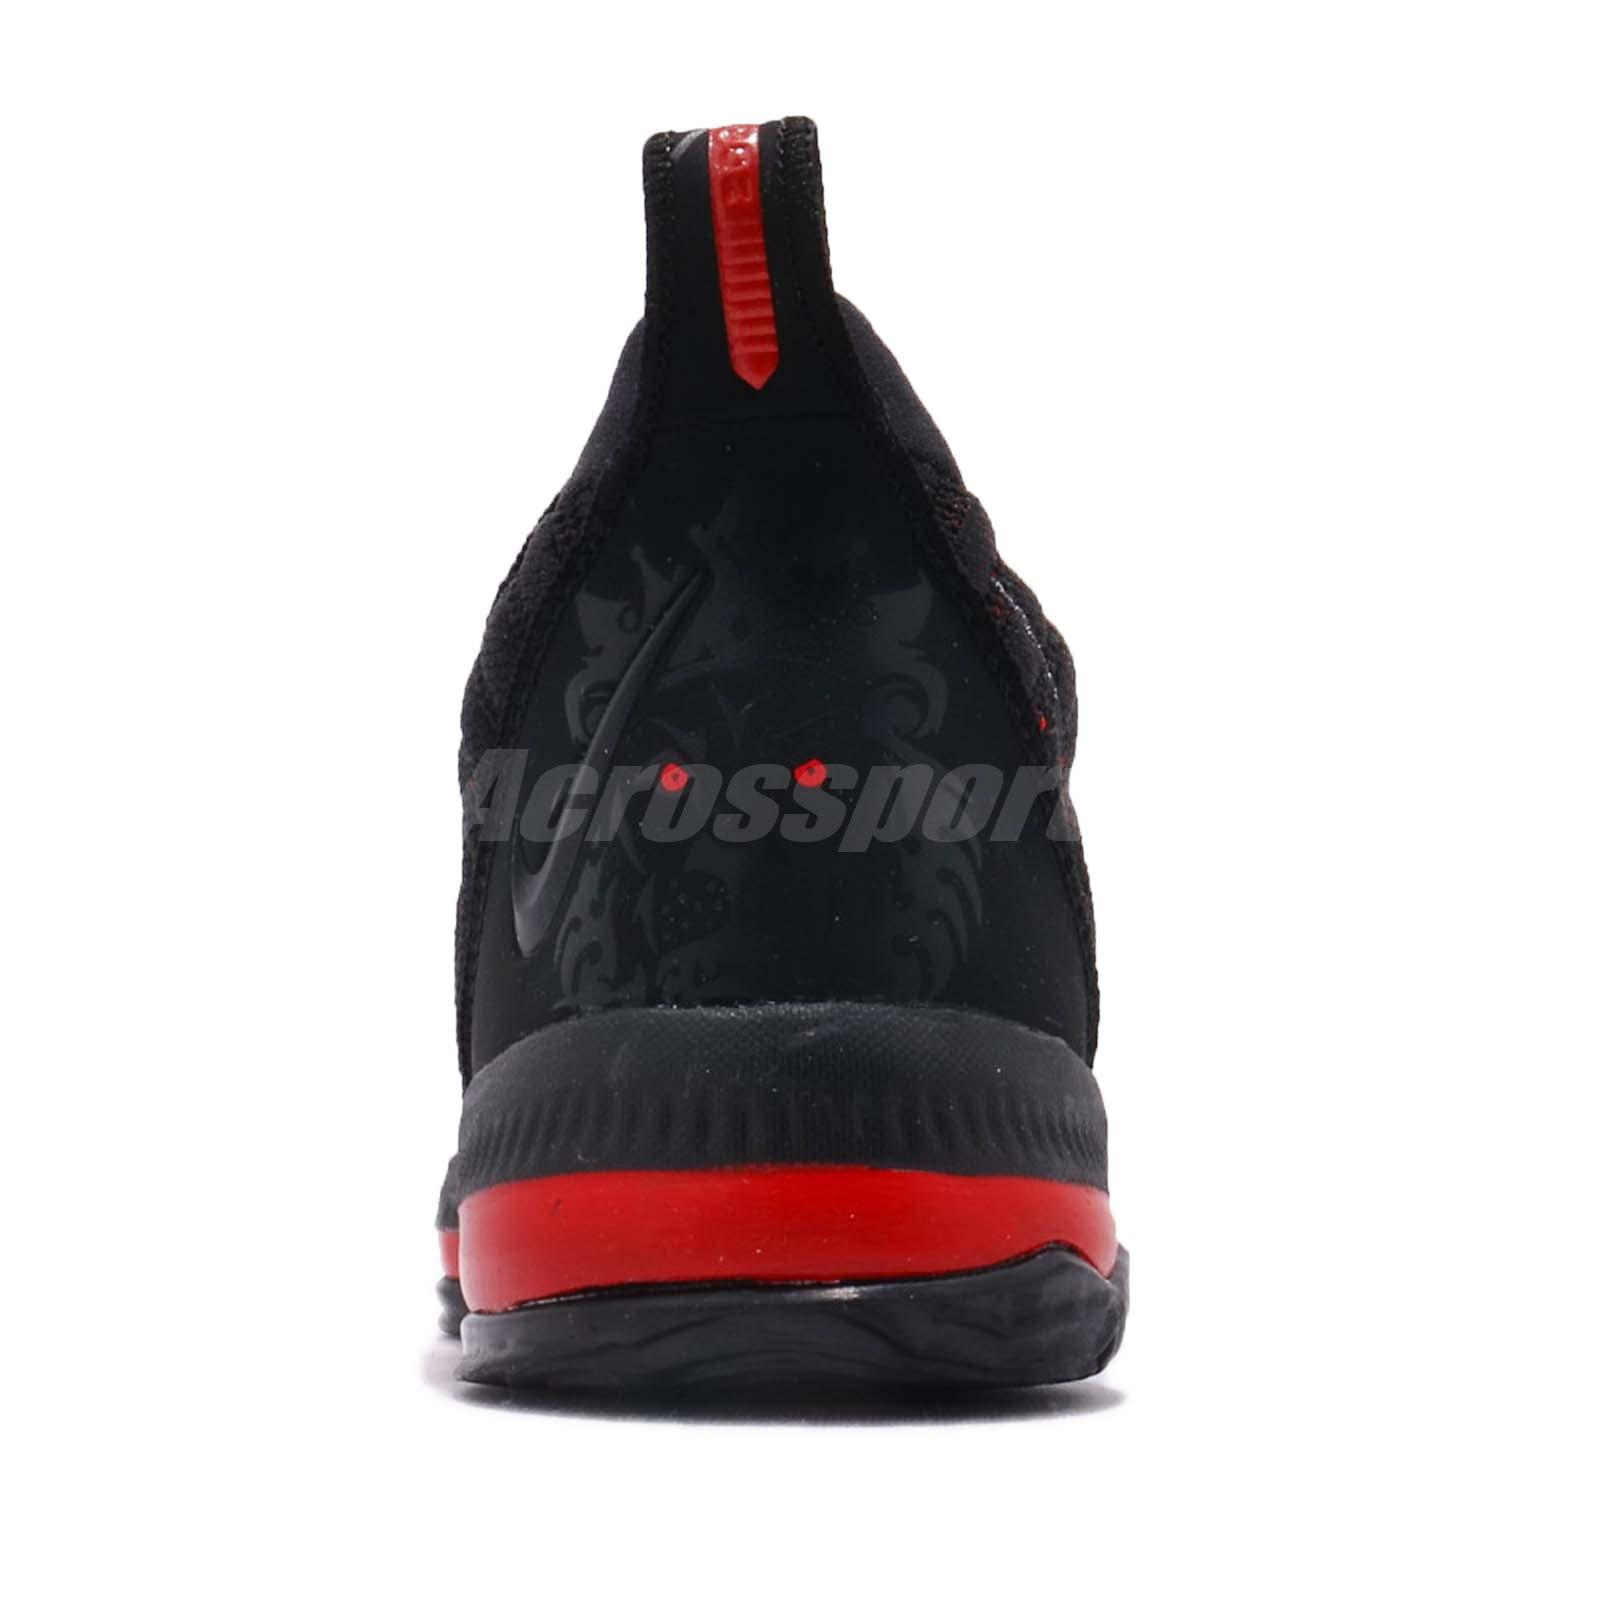 38cf6c5ae962 Nike LeBron XVI PS 16 James LBJ Fresh Bred Black Red Preschool Shoes ...